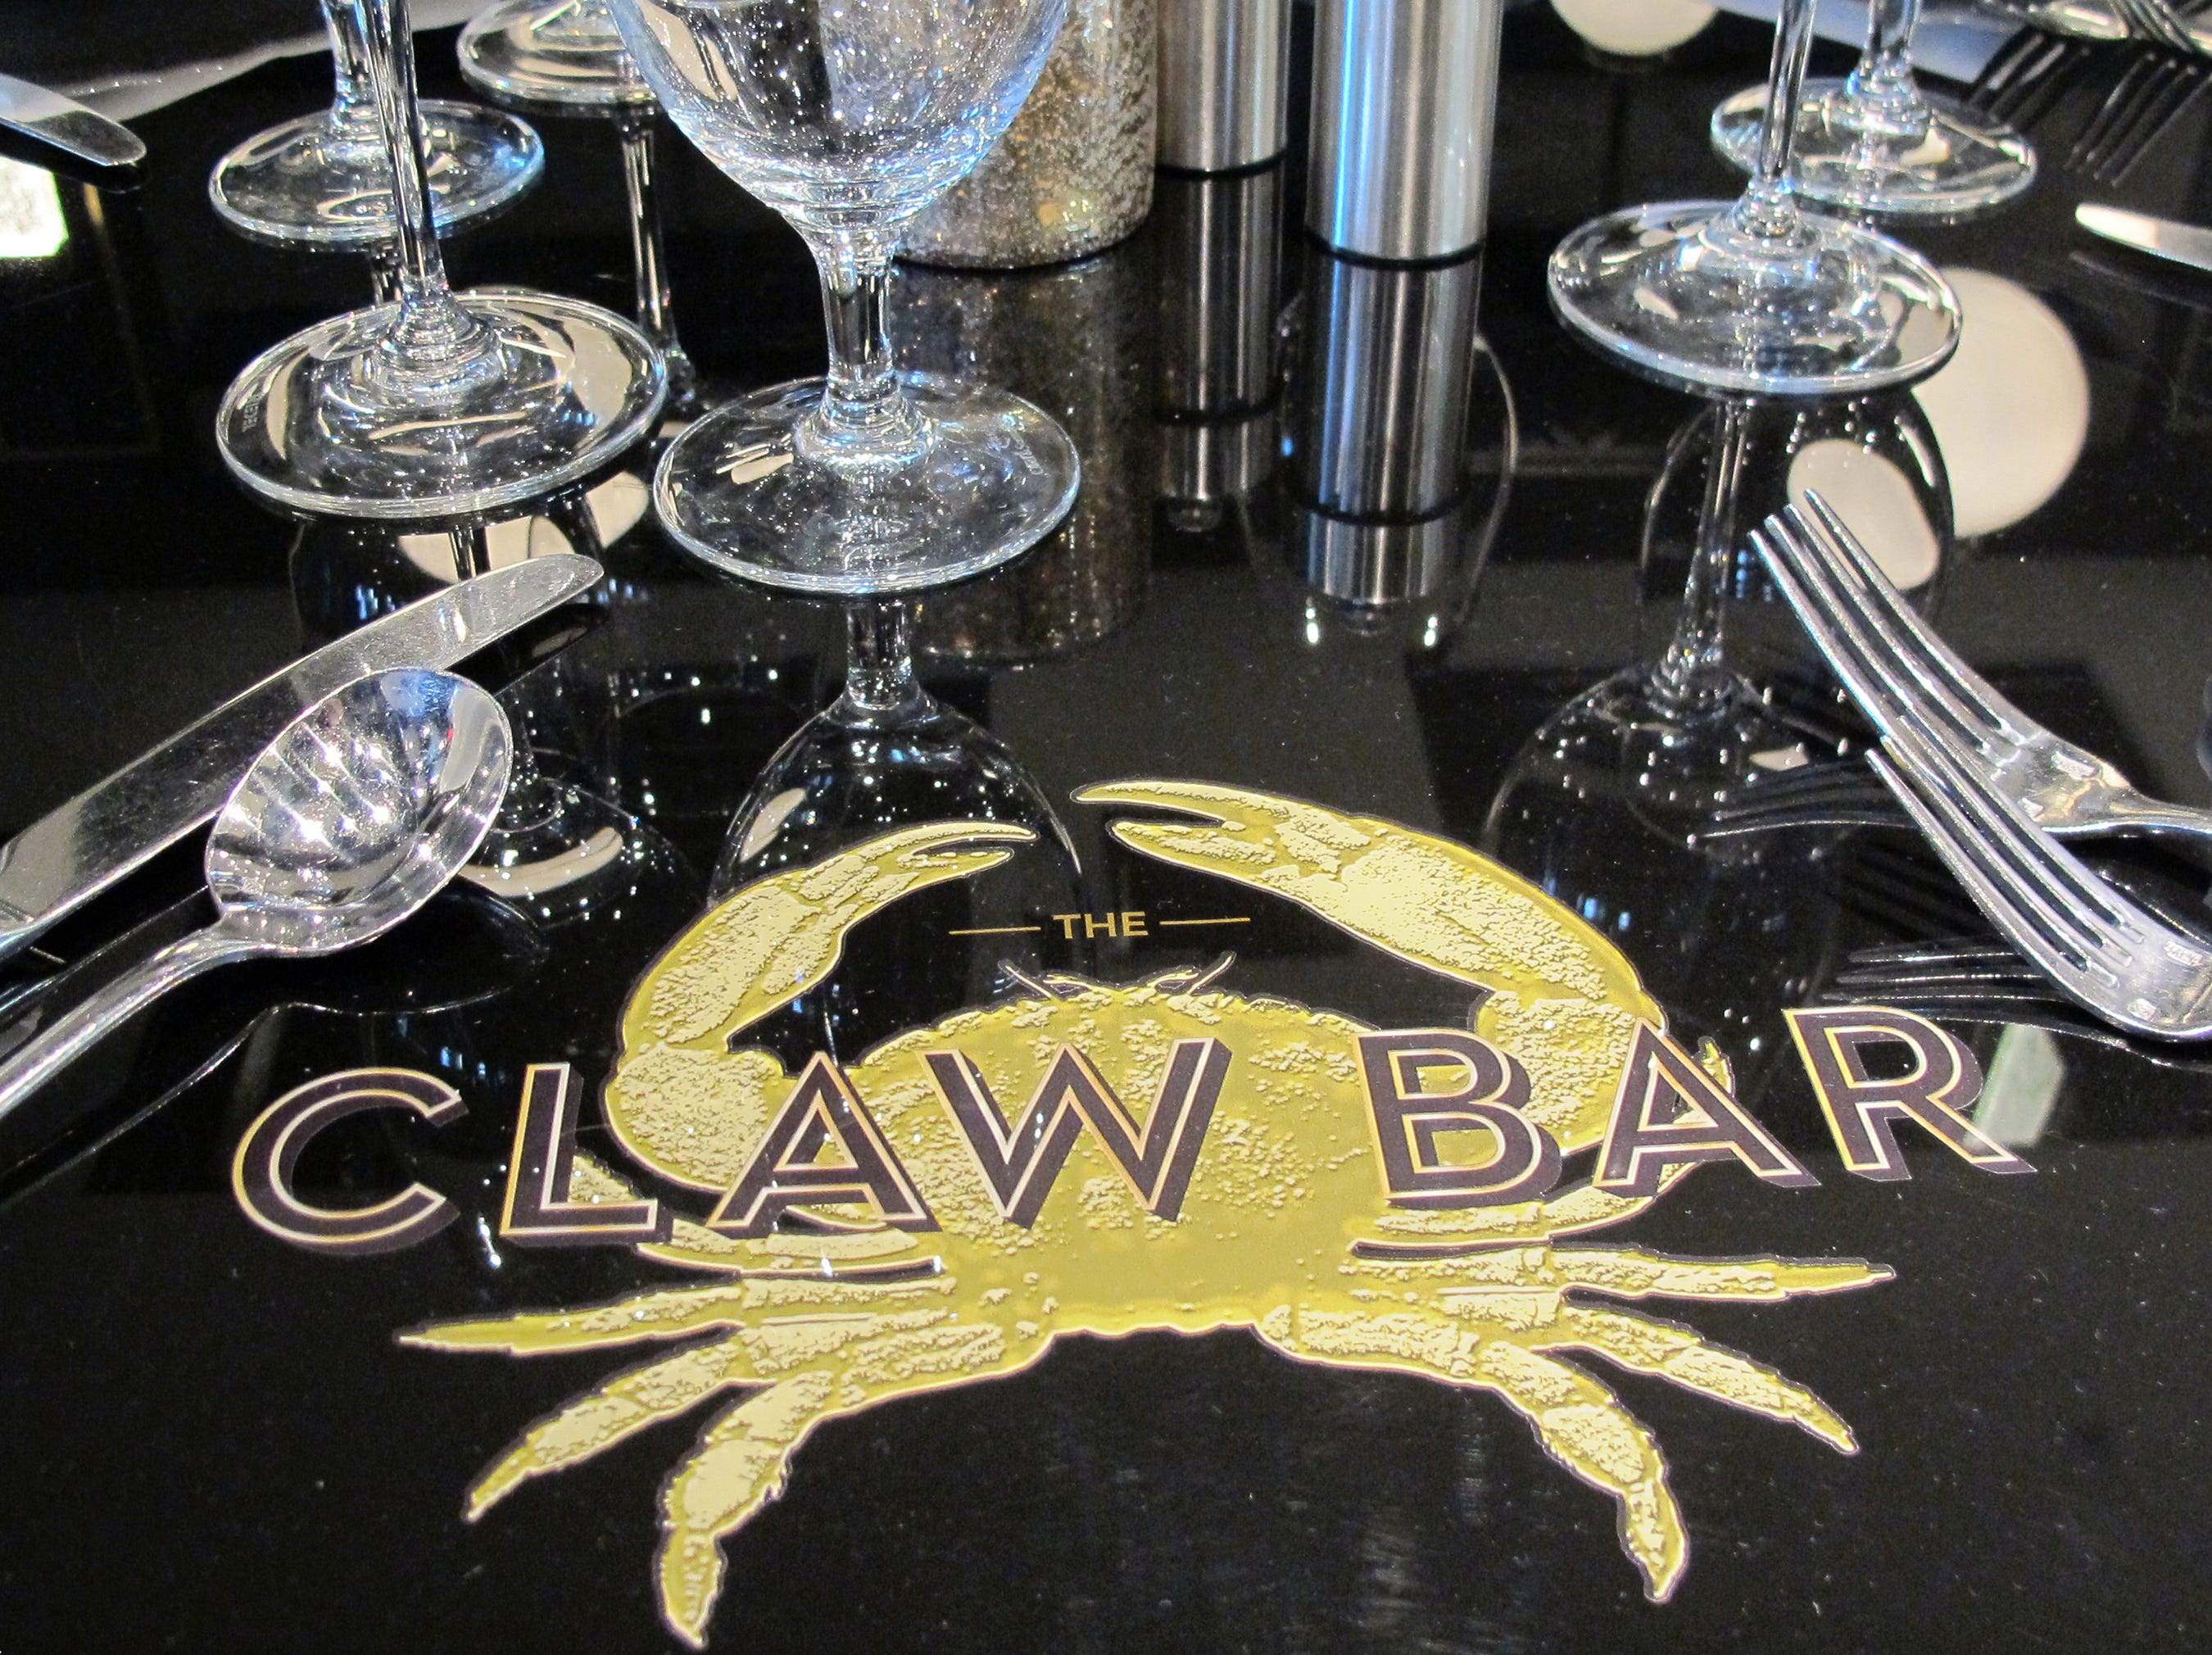 The Claw Bar opened in January 2018 inside Bellasera Resort in downtown Naples.